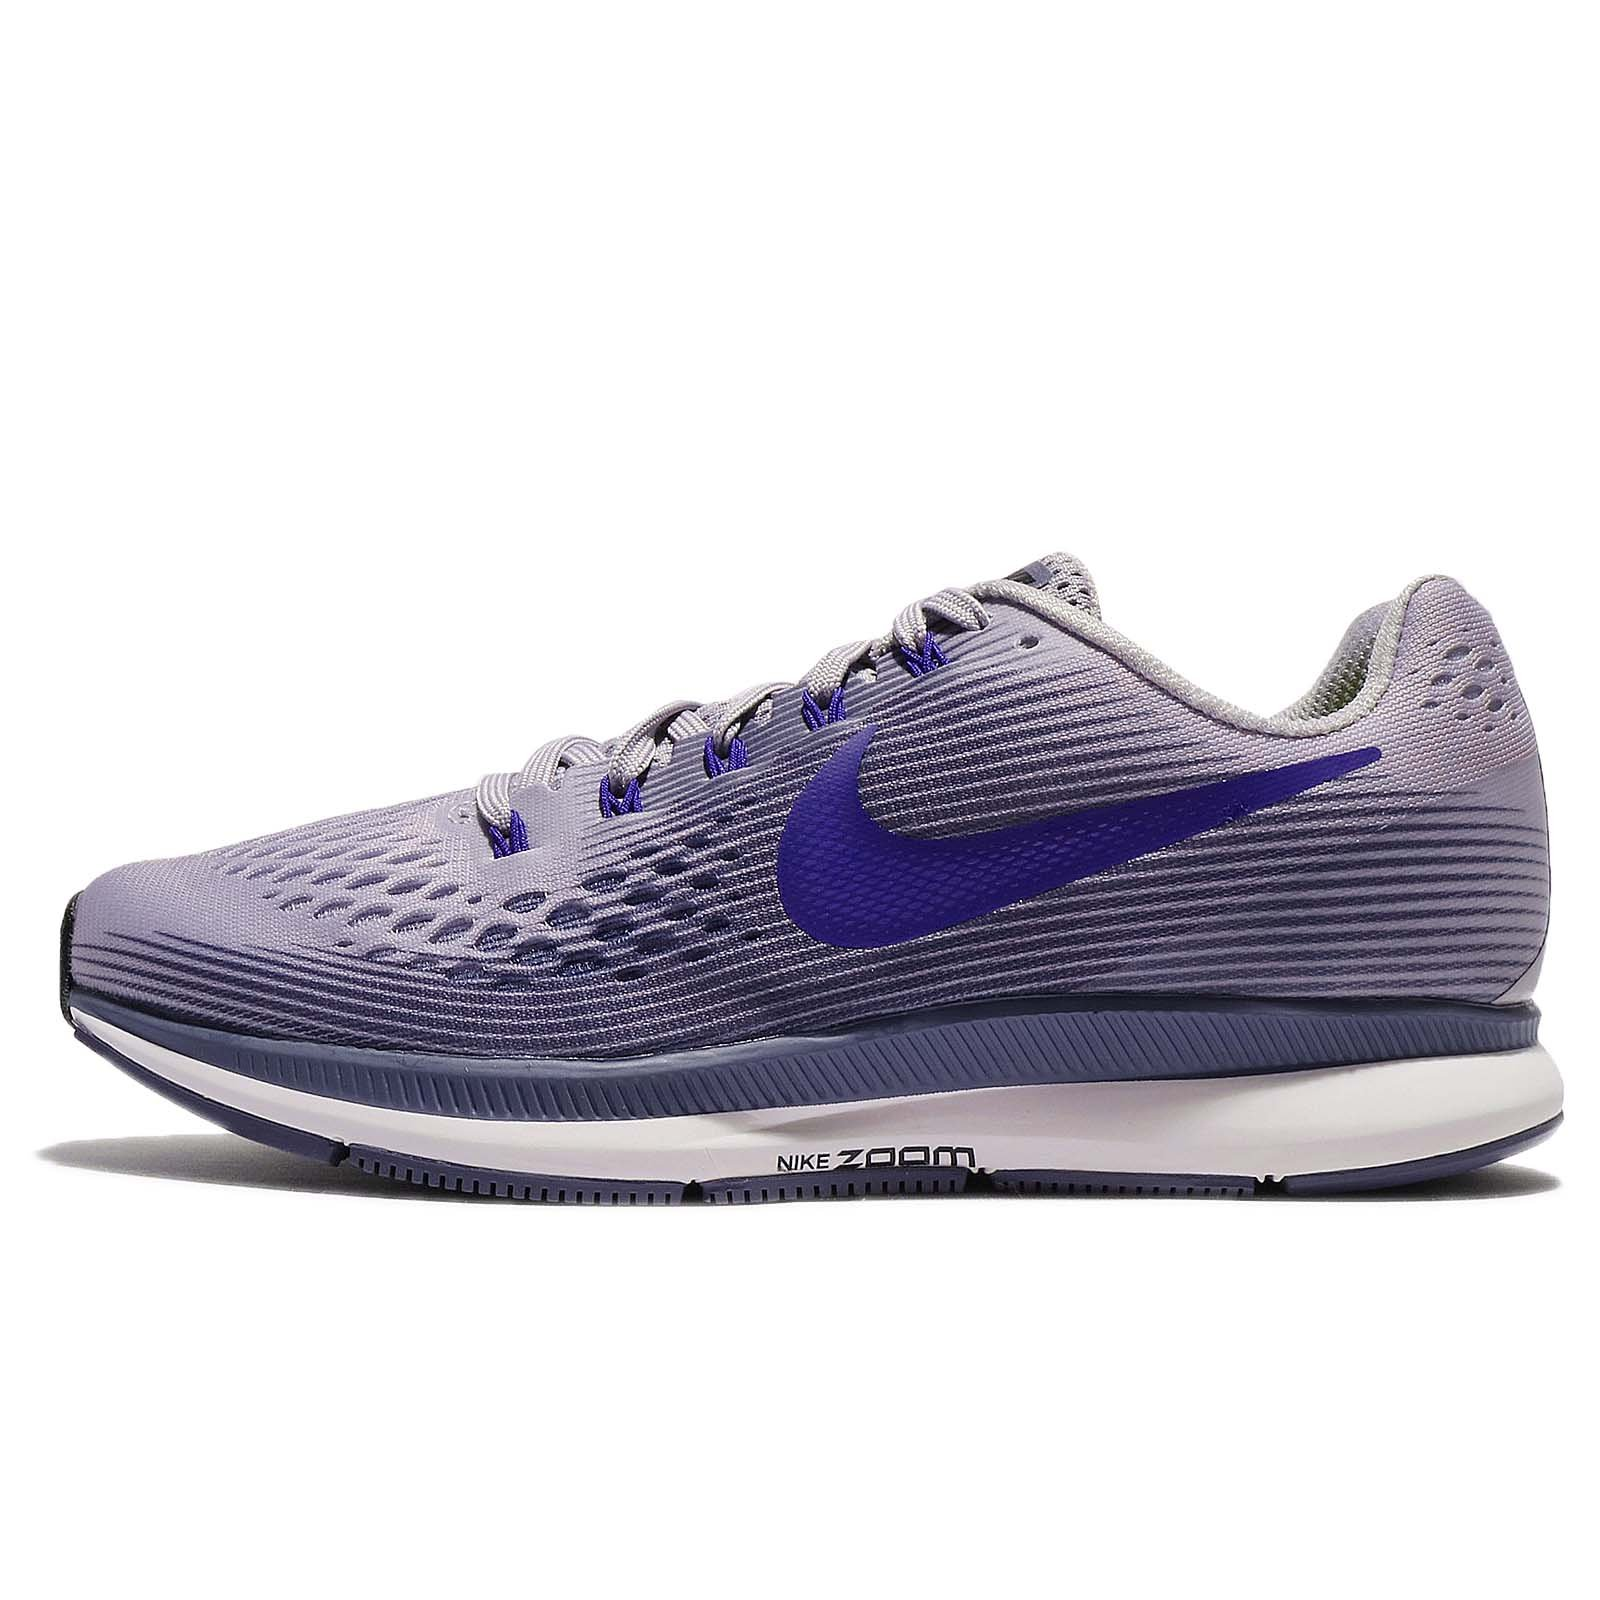 3fe76fb6098b7 Nike Women's Air Zoom Pegasus 34 Running Shoes (6, Provence Purple/Persian  Violet)